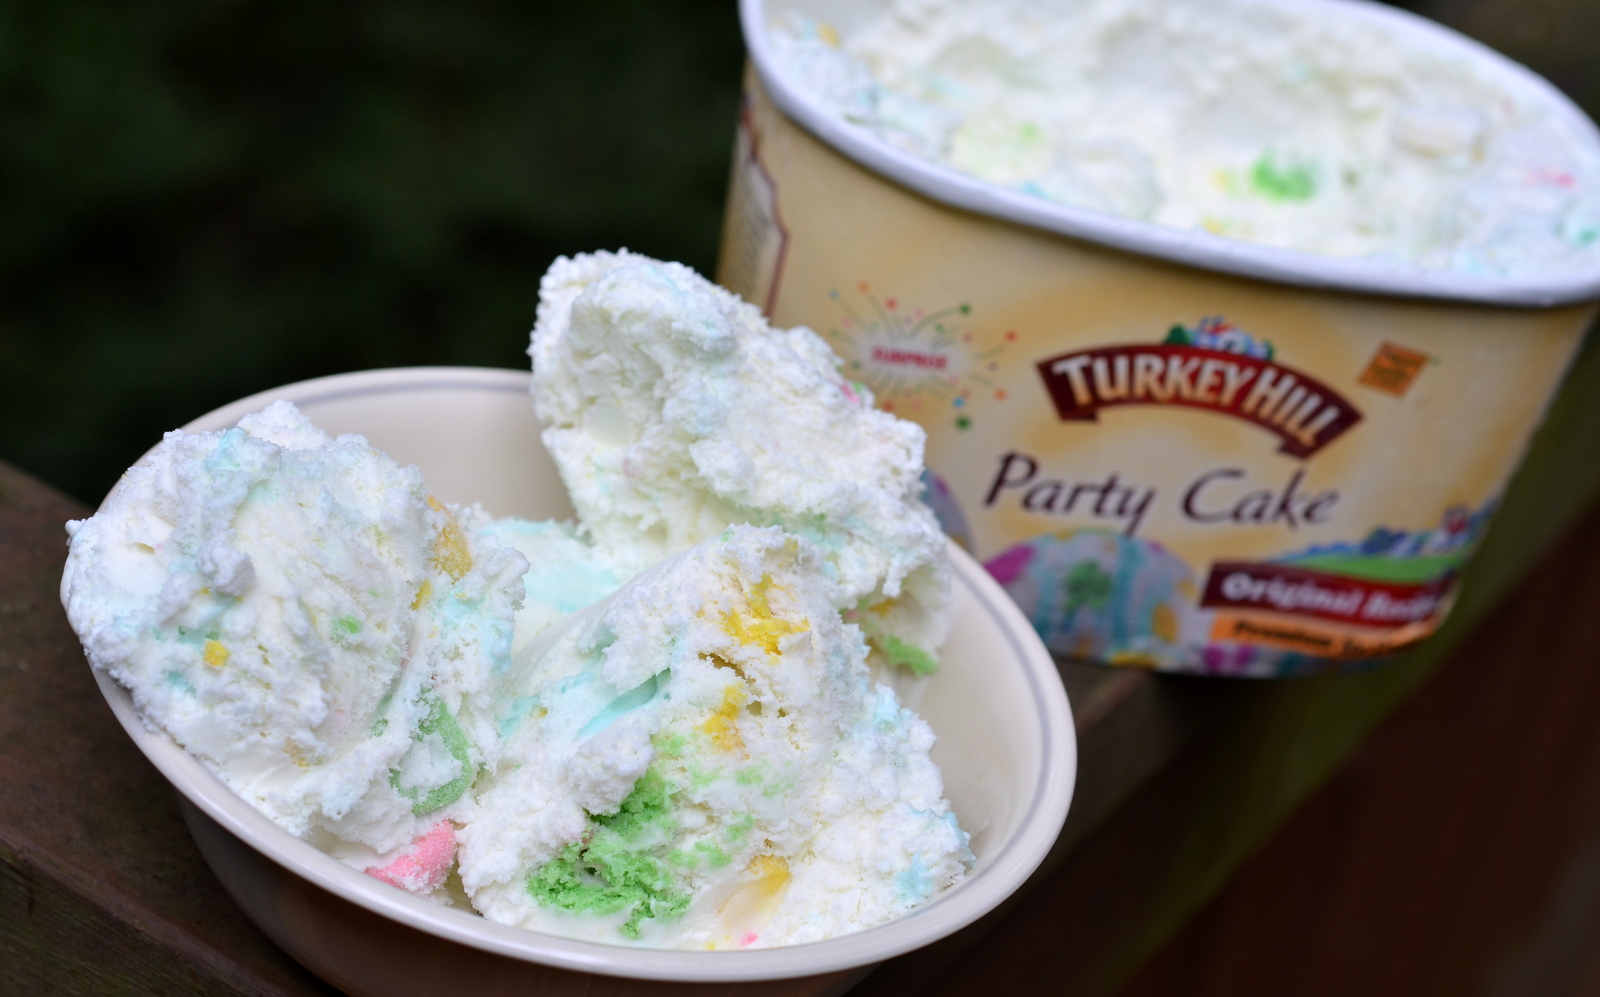 Birthday Cake Ice Cream At Kroger Image Inspiration of Cake and